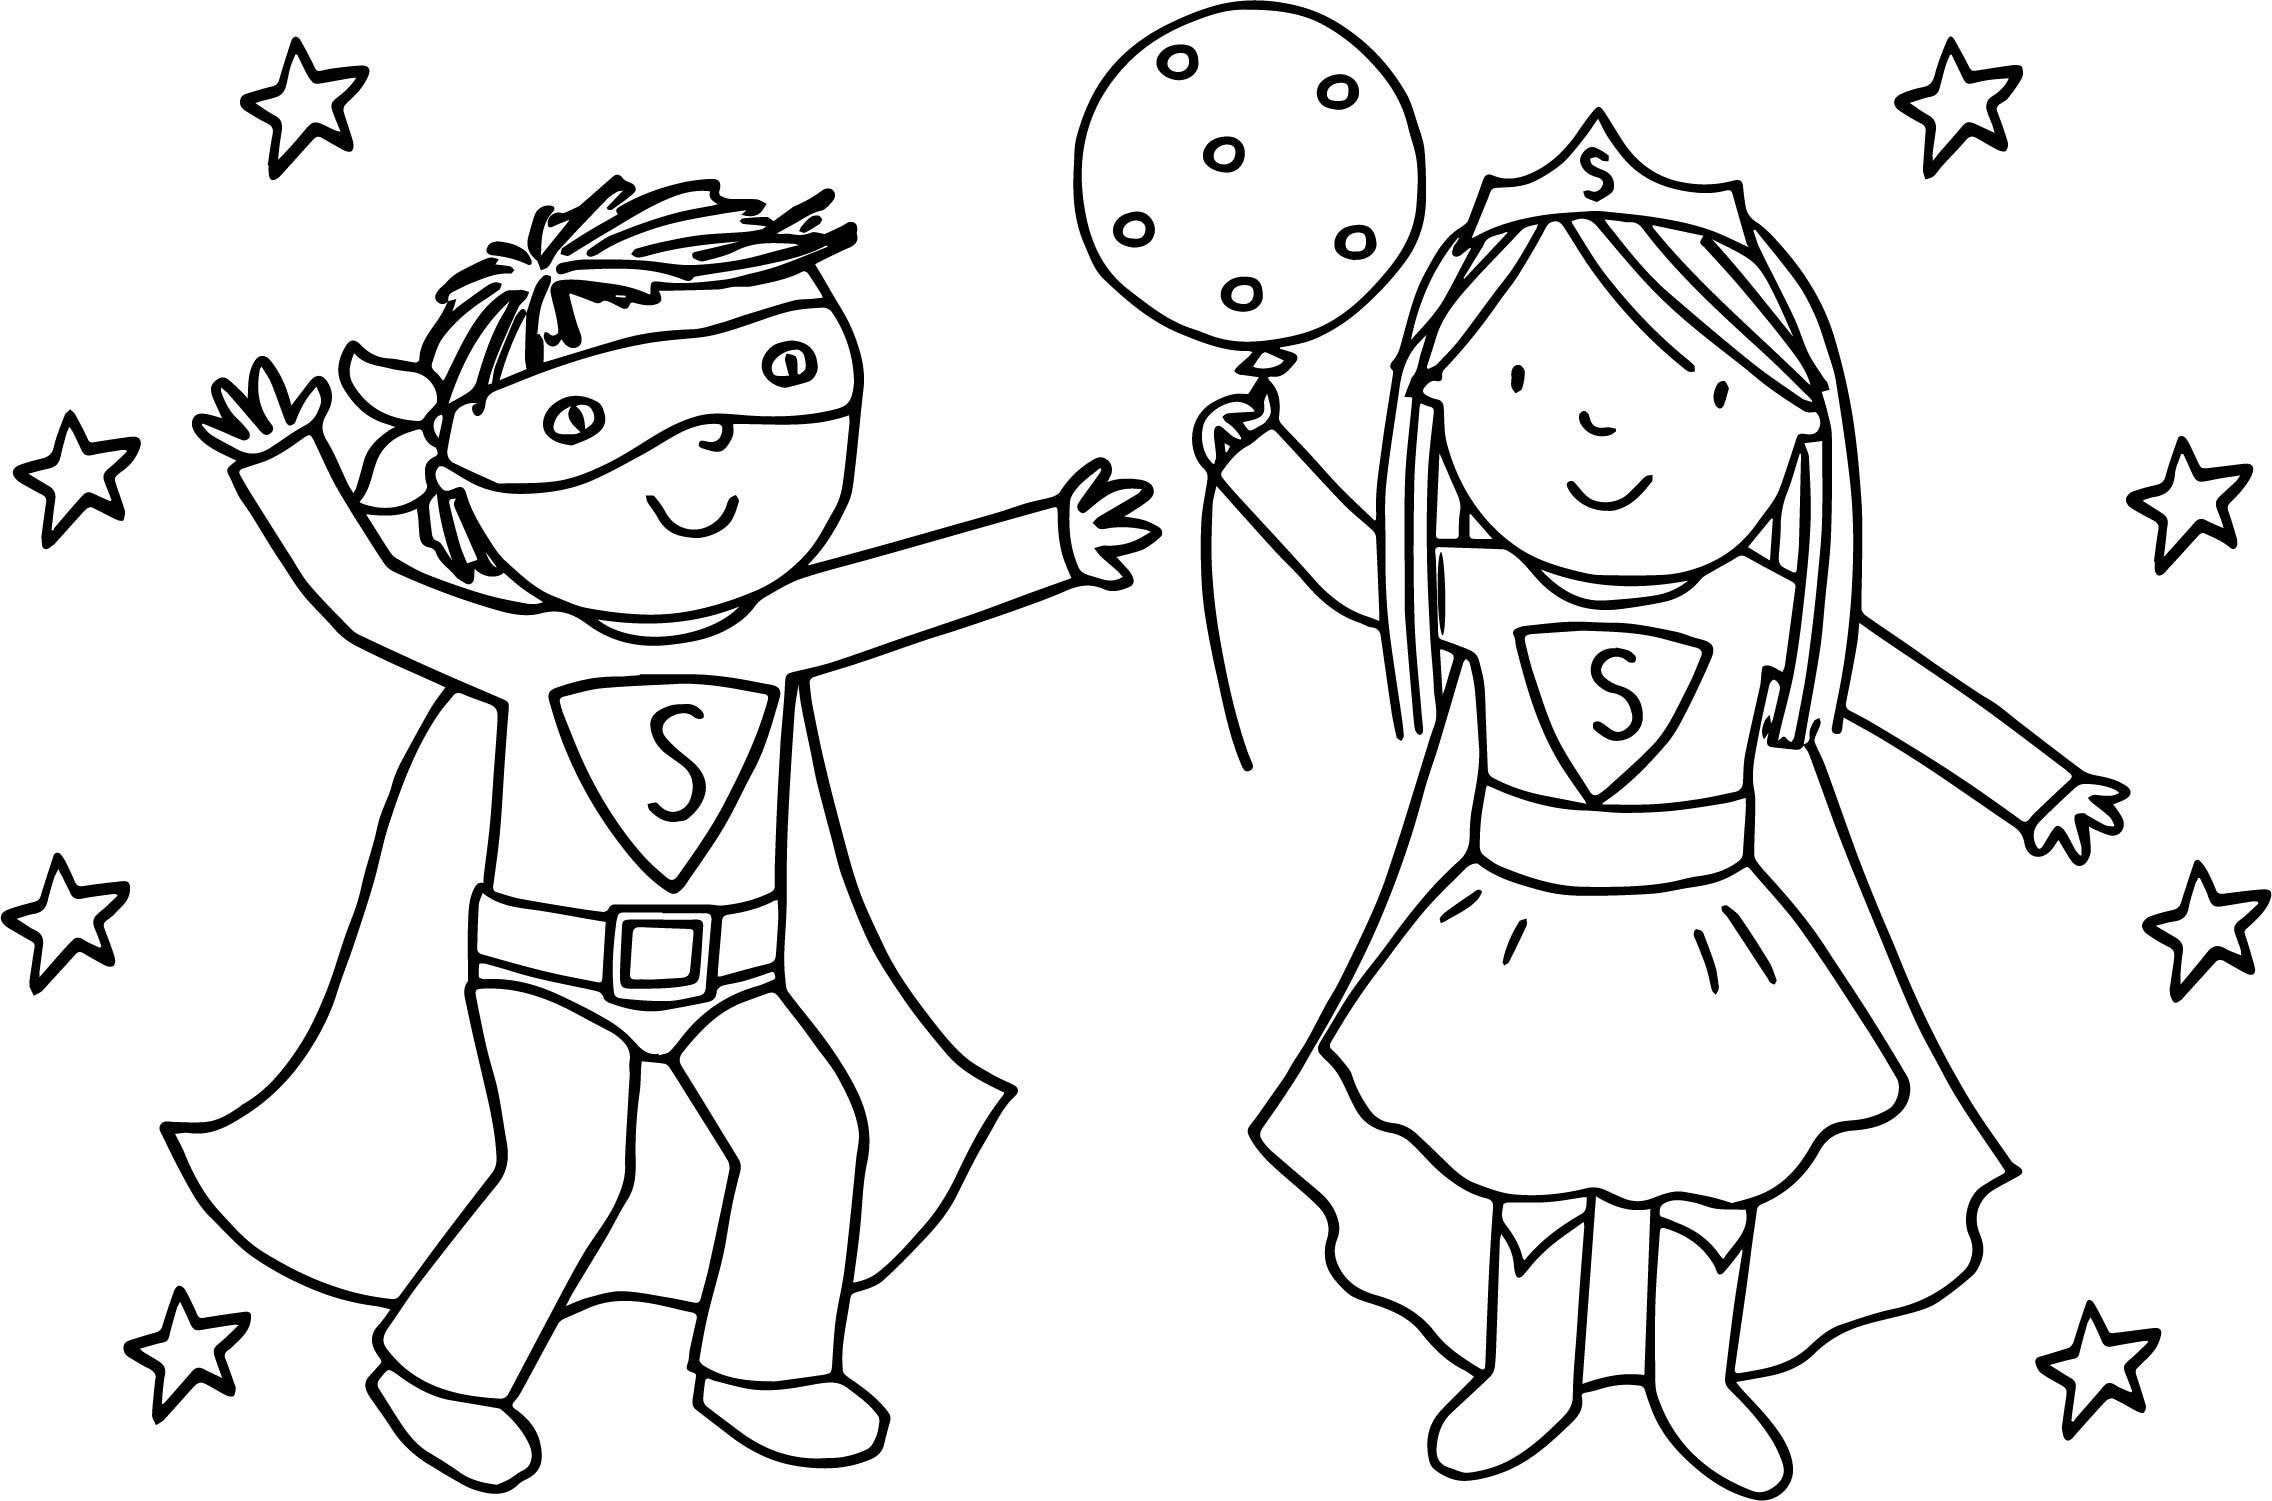 Free Printable Coloring Pages For Girls And Boys  Boy And Girl Coloring Pages